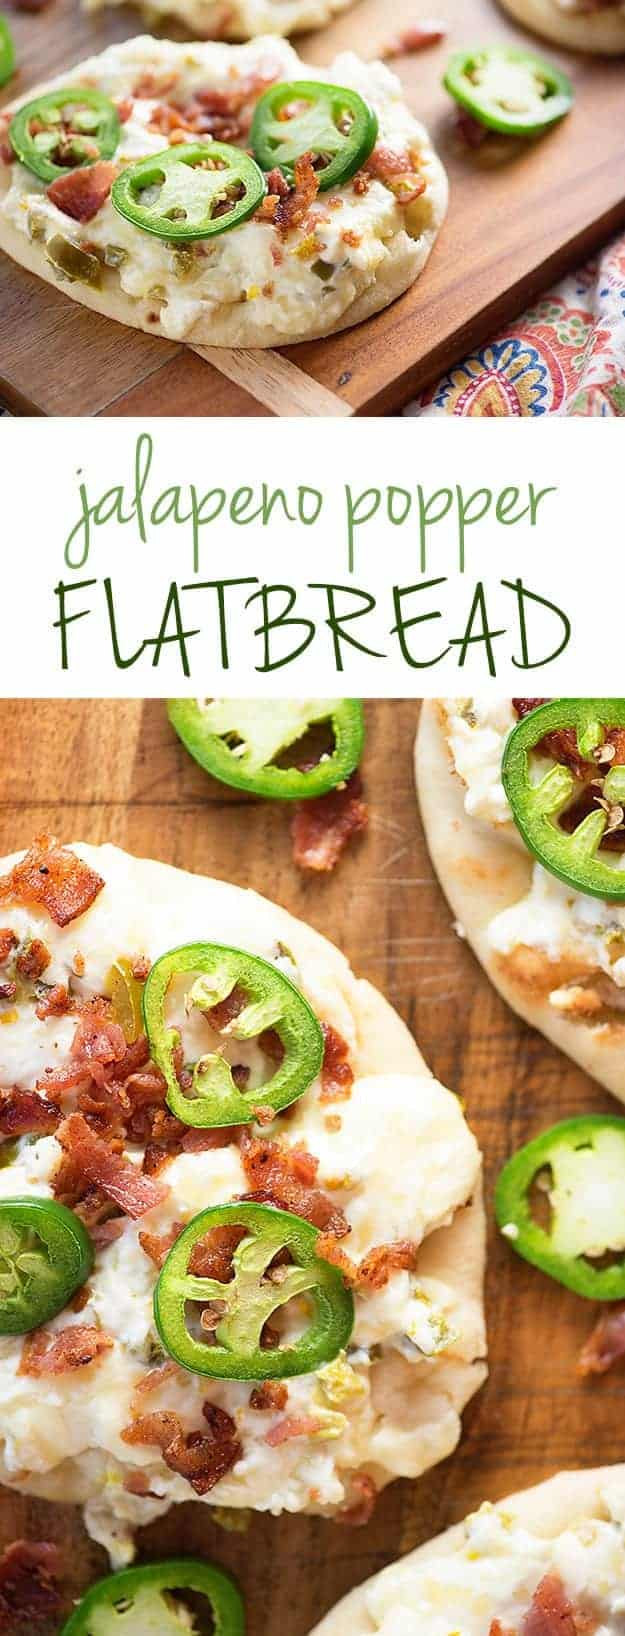 Flatbread topped with jalapenos, bacon, and cream cheese.